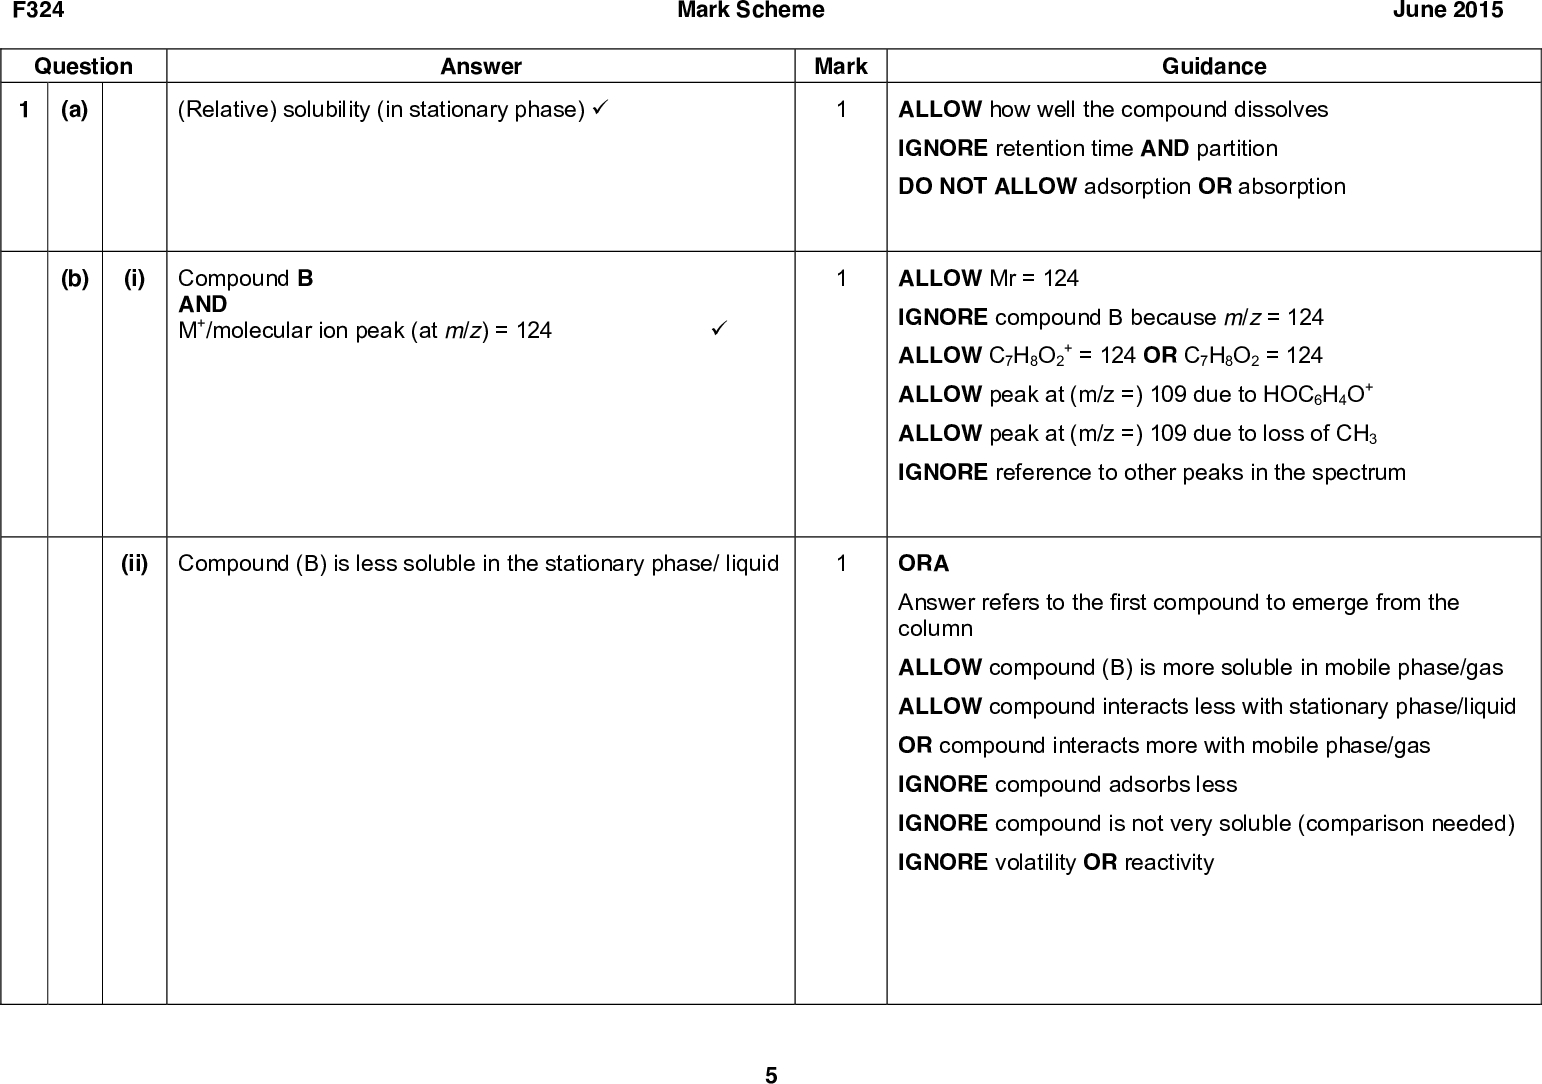 F324 Question 1 (a) Answer (Relative) solubility (in stationary phase) (cid:57) Mark Scheme June 2015 Mark Guidance ALLOW how well the compound dissolves IGNORE retention time AND partition DO NOT ALLOW adsorption OR absorption ALLOW Mr = 124 IGNORE compound B because m/z = 124 ALLOW C7H8O2 + = 124 OR C7H8O2 = 124 ALLOW peak at (m/z =) 109 due to HOC6H4O+ ALLOW peak at (m/z =) 109 due to loss of CH3 IGNORE reference to other peaks in the spectrum ORA Answer refers to the first compound to emerge from the column ALLOW compound (B) is more soluble in mobile phase/gas ALLOW compound interacts less with stationary phase/liquid OR compound interacts more with mobile phase/gas IGNORE compound adsorbs less IGNORE compound is not very soluble (comparison needed) IGNORE volatility OR reactivity (b) (i) Compound B AND M+/molecular ion peak (at m/z) = 124 (cid:57) (ii) Compound (B) is less soluble in the stationary phase/ liquid<br />  F324 Question (i) (c) Answer reagent = K2Cr2O7 AND H2SO4 (cid:57) Mark Scheme Mark compound C = (cid:57) June 2015 Guidance 2- /(potassium OR sodium) ALLOW acidified dichromate ALLOW H+/any acid IGNORE concentration of acid ALLOW Na2Cr2O7 /Cr2O7 dichromate((VI)) ALLOW acidified MnO4 - ALLOW Tollens reagent/ammoniacal silver nitrate IGNORE conditions ALLOW correct structural OR displayed OR skeletal formulae OR a combination of above as long as unambiguous ALLOW ECF from incorrect compound C Check positions of OH groups ALLOW esterification of phenol group ester = (cid:57)<br />  F324 Question (ii) Mark Scheme June 2015 Answer curly arrow from H to C+ dipole AND curly arrow from C=O bond to O (cid:57) correct intermediate AND curly arrow to H+ (cid:57) (cid:57) Mark Guidance ANNOTATE ANSWER WITH TICKS AND CROSSES ETC curly arrow must come from lone pair on H or negative charge on H curly arrow must come from the bond, not the carbon atom curly arrow must come from lone pair on O or negative charge on O and go to H or positive charge on H Where ci